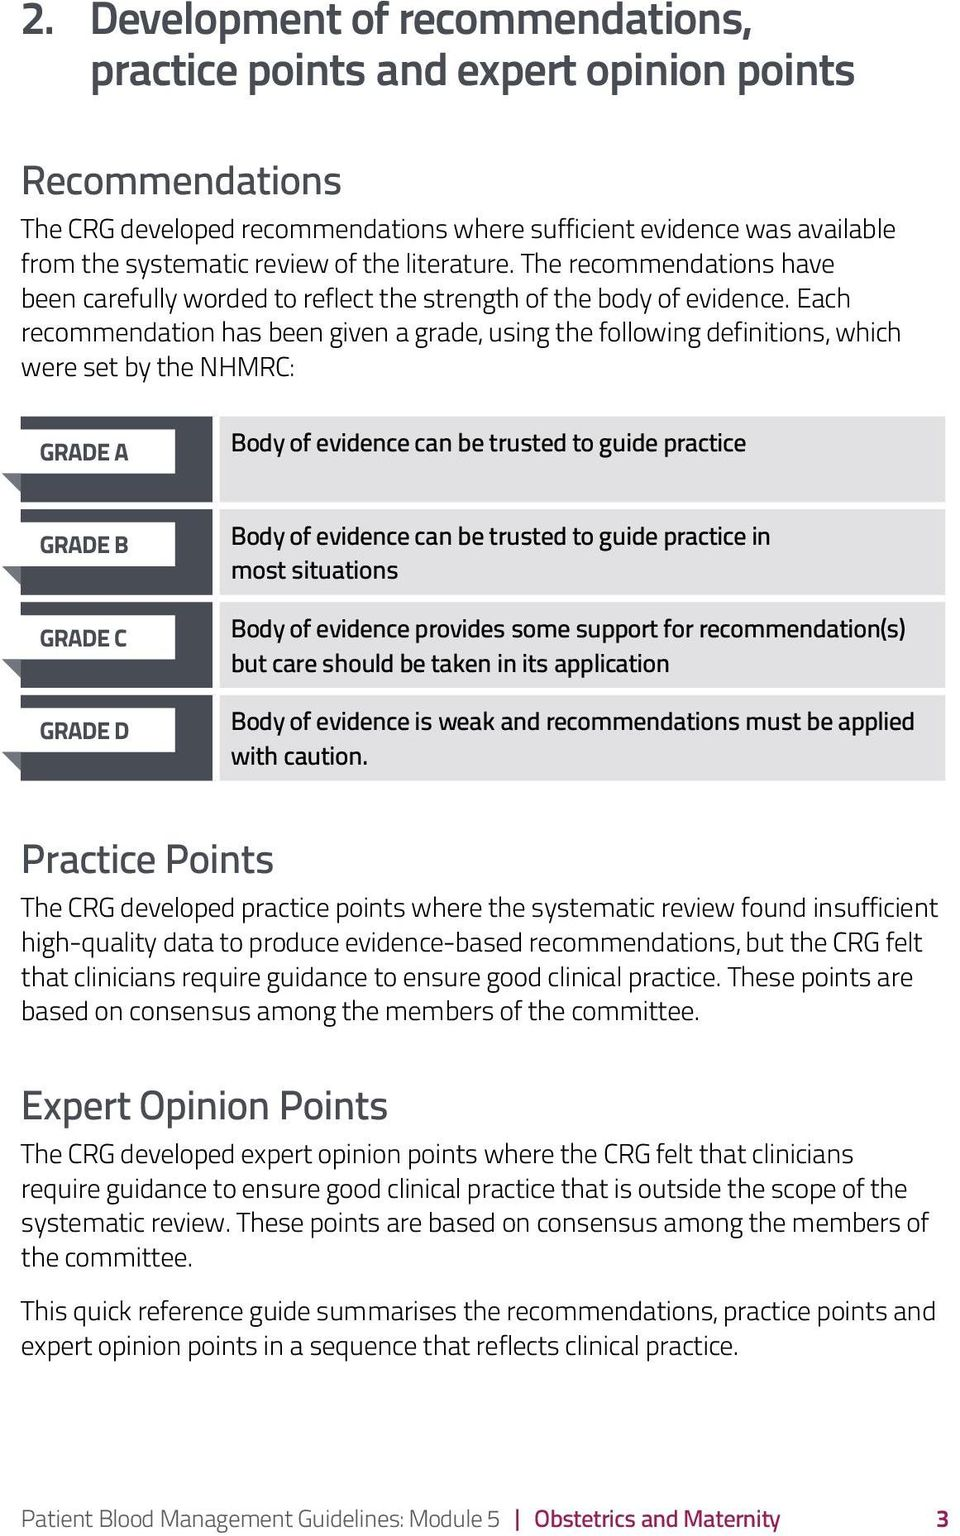 Each recommendation has been given a grade, using the following definitions, which were set by the NHMRC: GRADE A Body of evidence can be trusted to guide practice GRADE B GRADE C GRADE D Body of